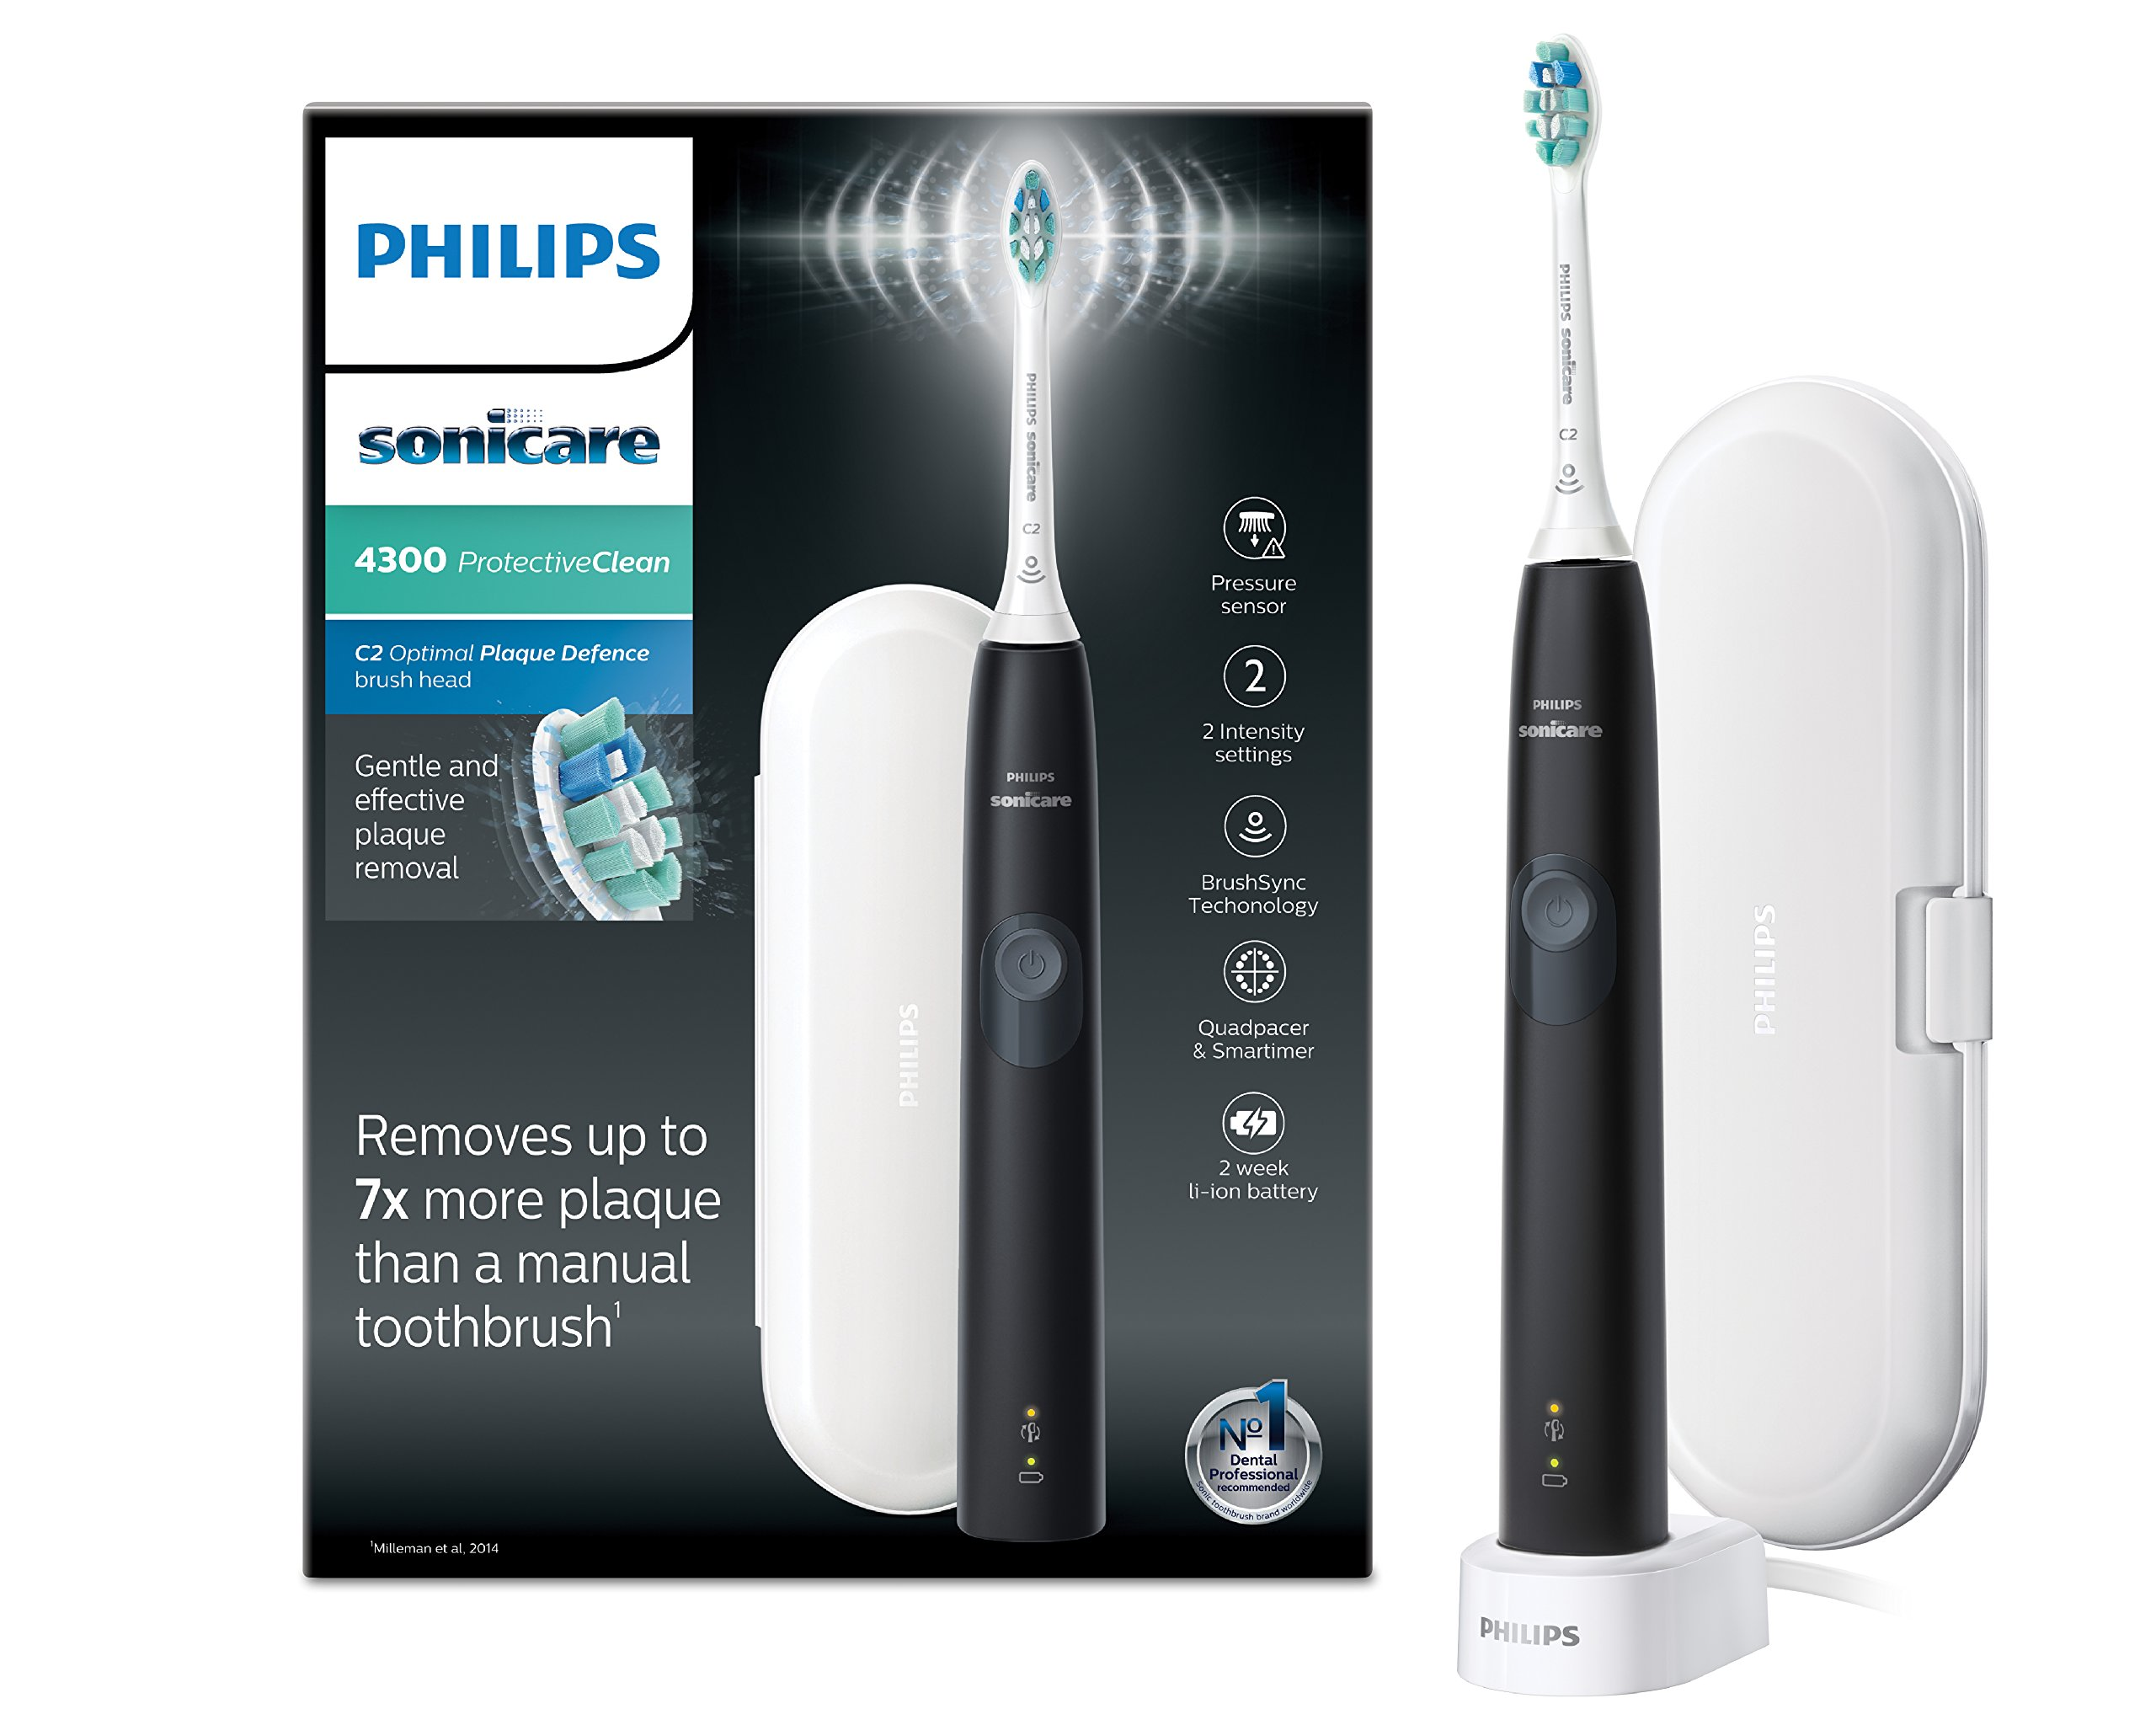 Philips Sonicare ProtectiveClean Model 4300 Electric Toothbrush, Black